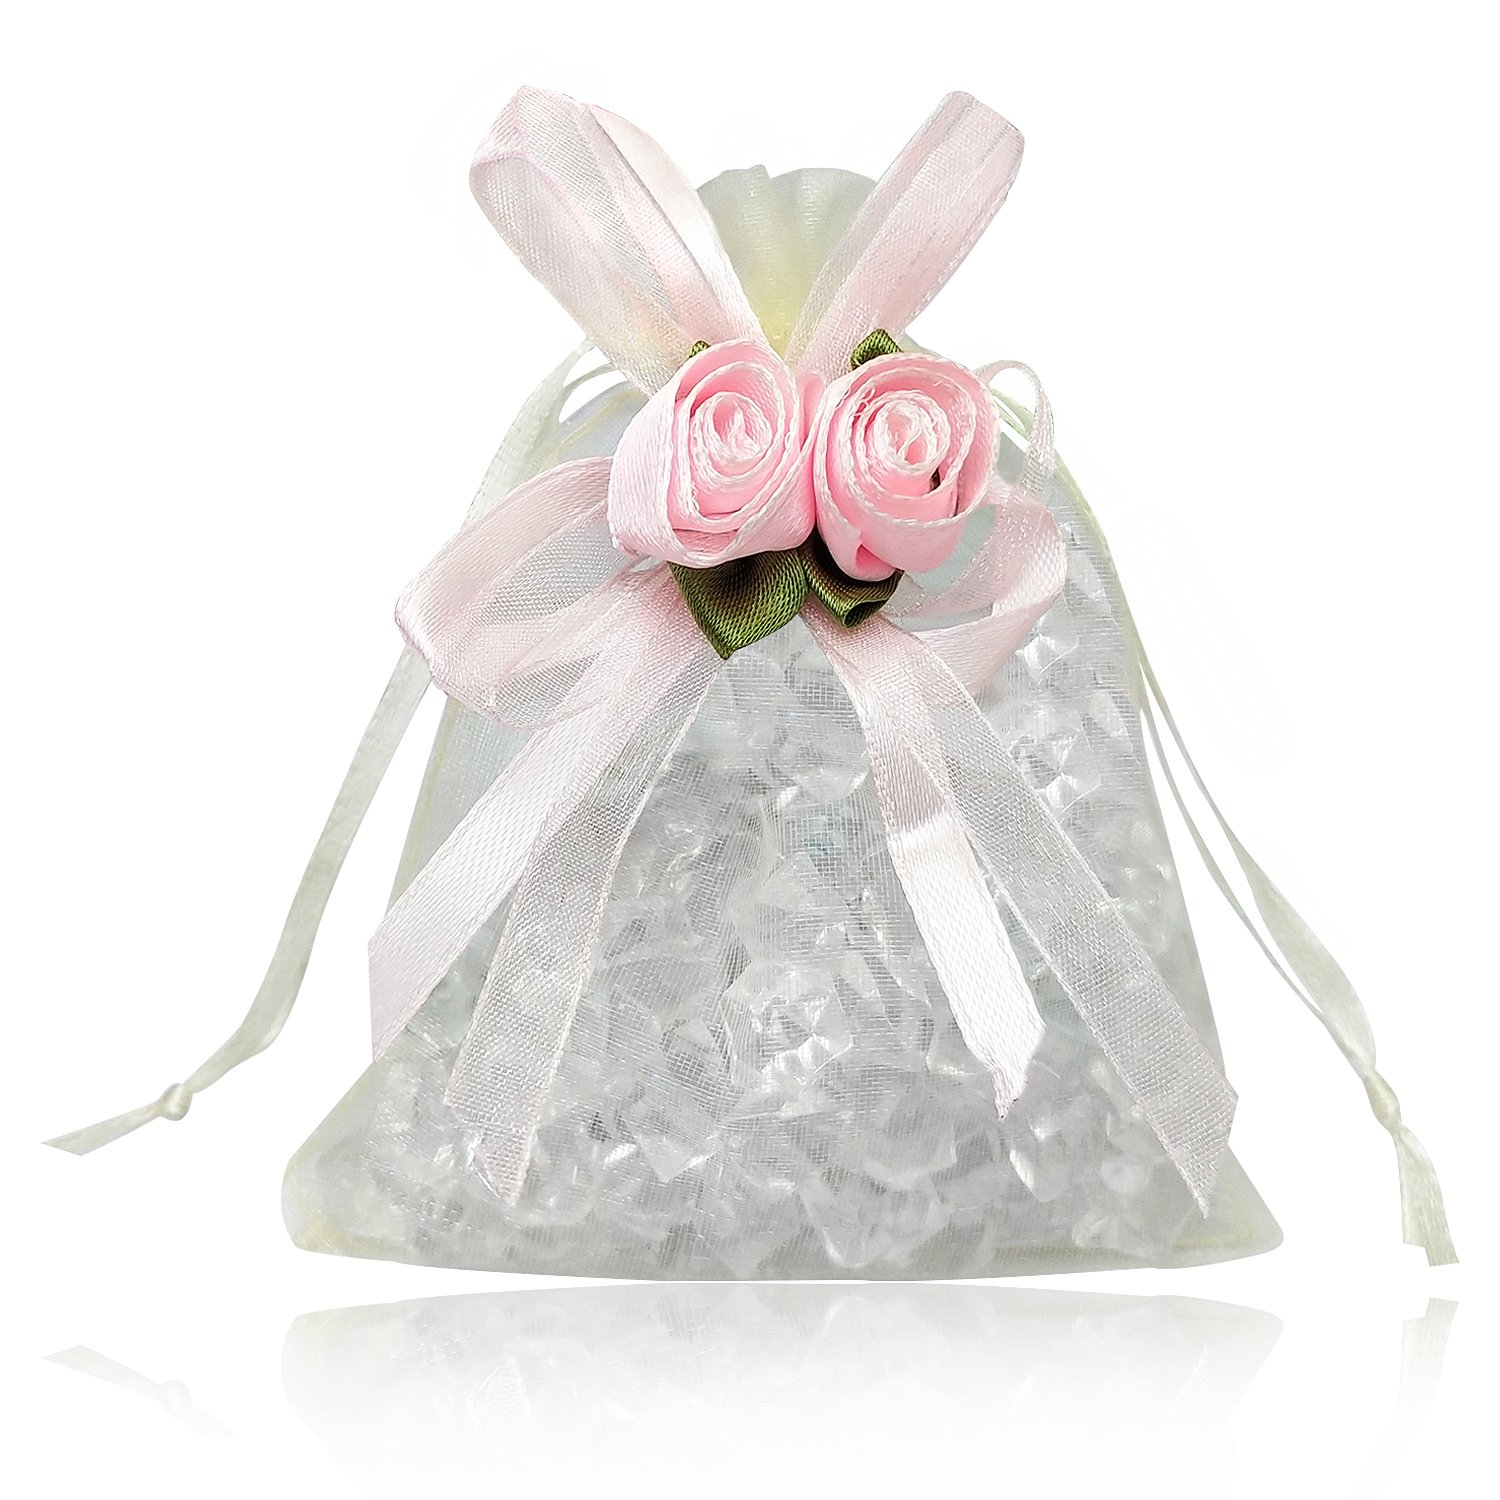 BZCTAH Tulie Drawstring Wedding Candy Pouch Jewelry Gift Bag, Organza Gift Bag Tulle Bags for Wedding Party, Set of 20Pcs Christmas, Beige, 7.87''x11.8''